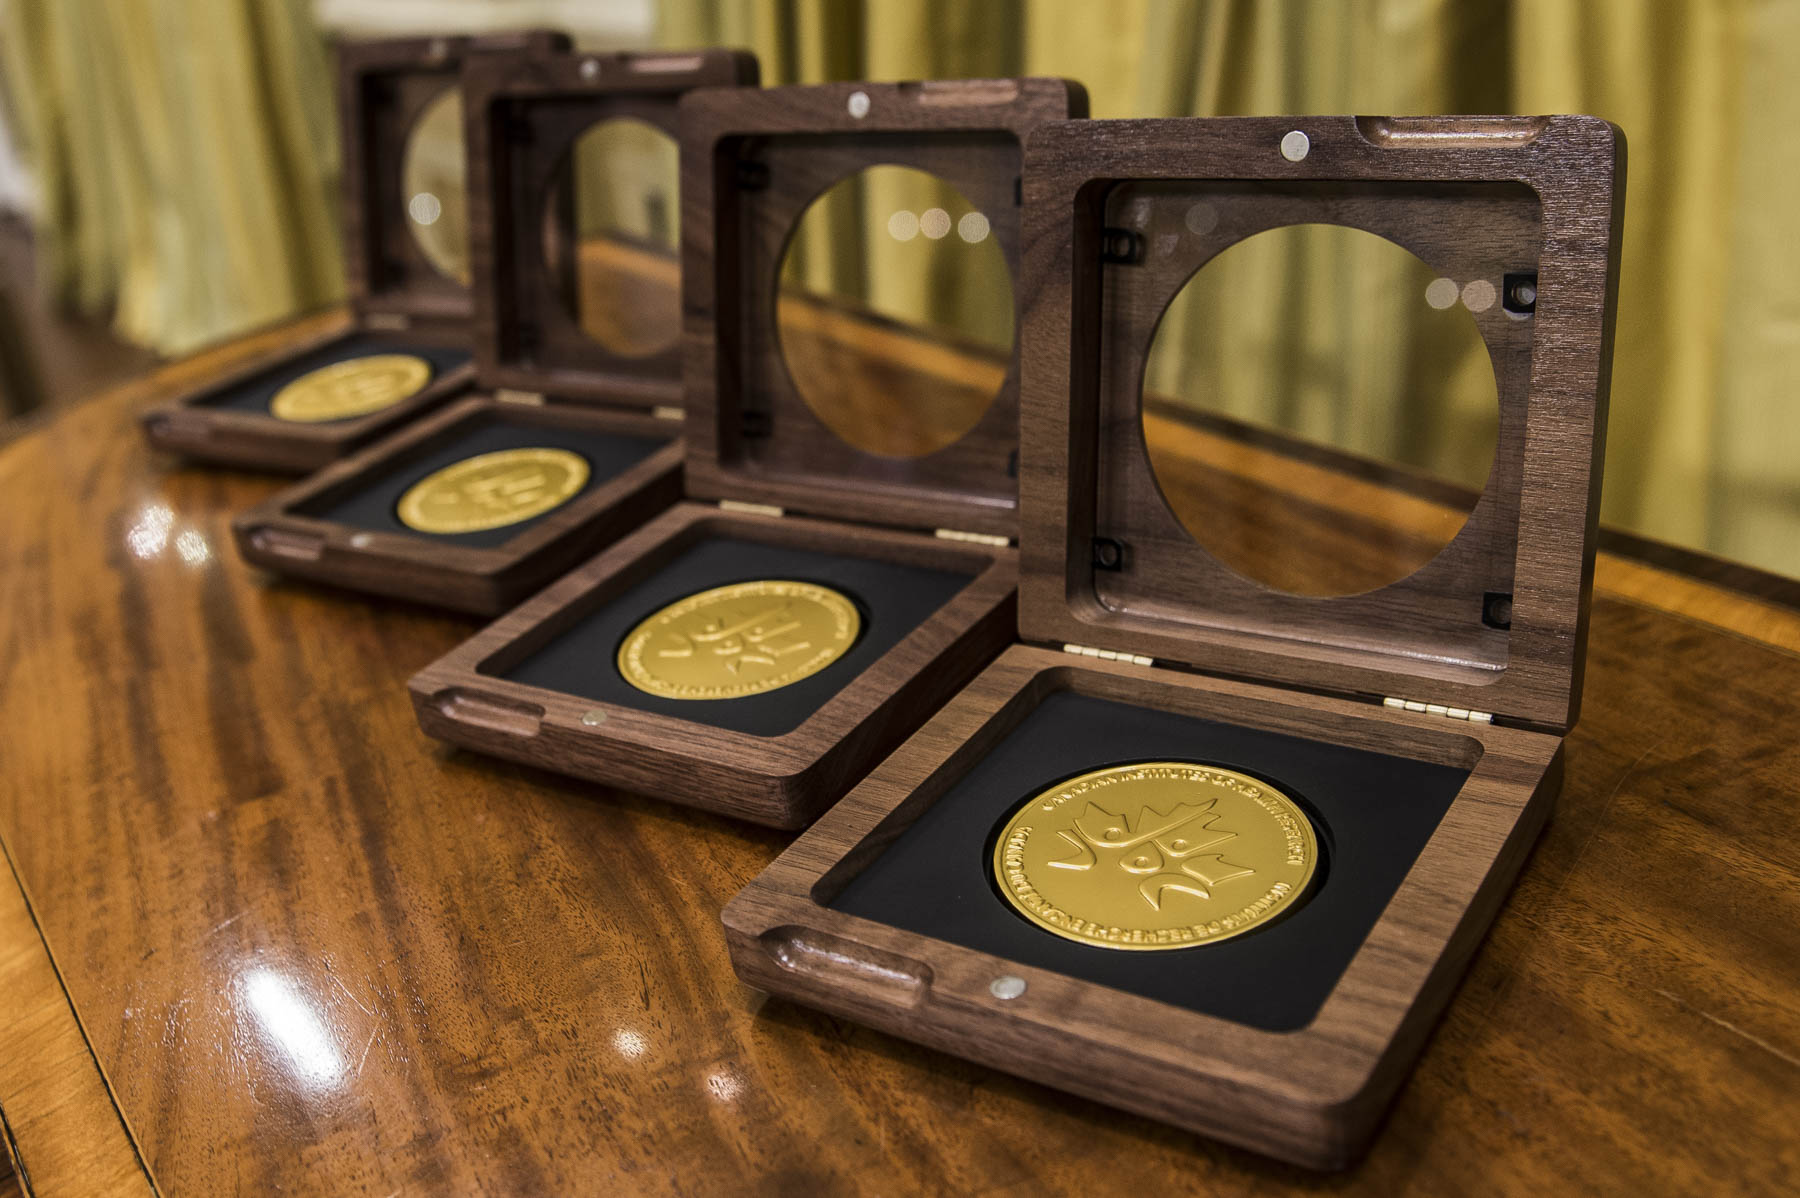 The Governor General presented the Canadian Institutes of Health Research (CIHR) Gold Leaf Prizes for 2016 to four laureates during a ceremony at Rideau Hall.